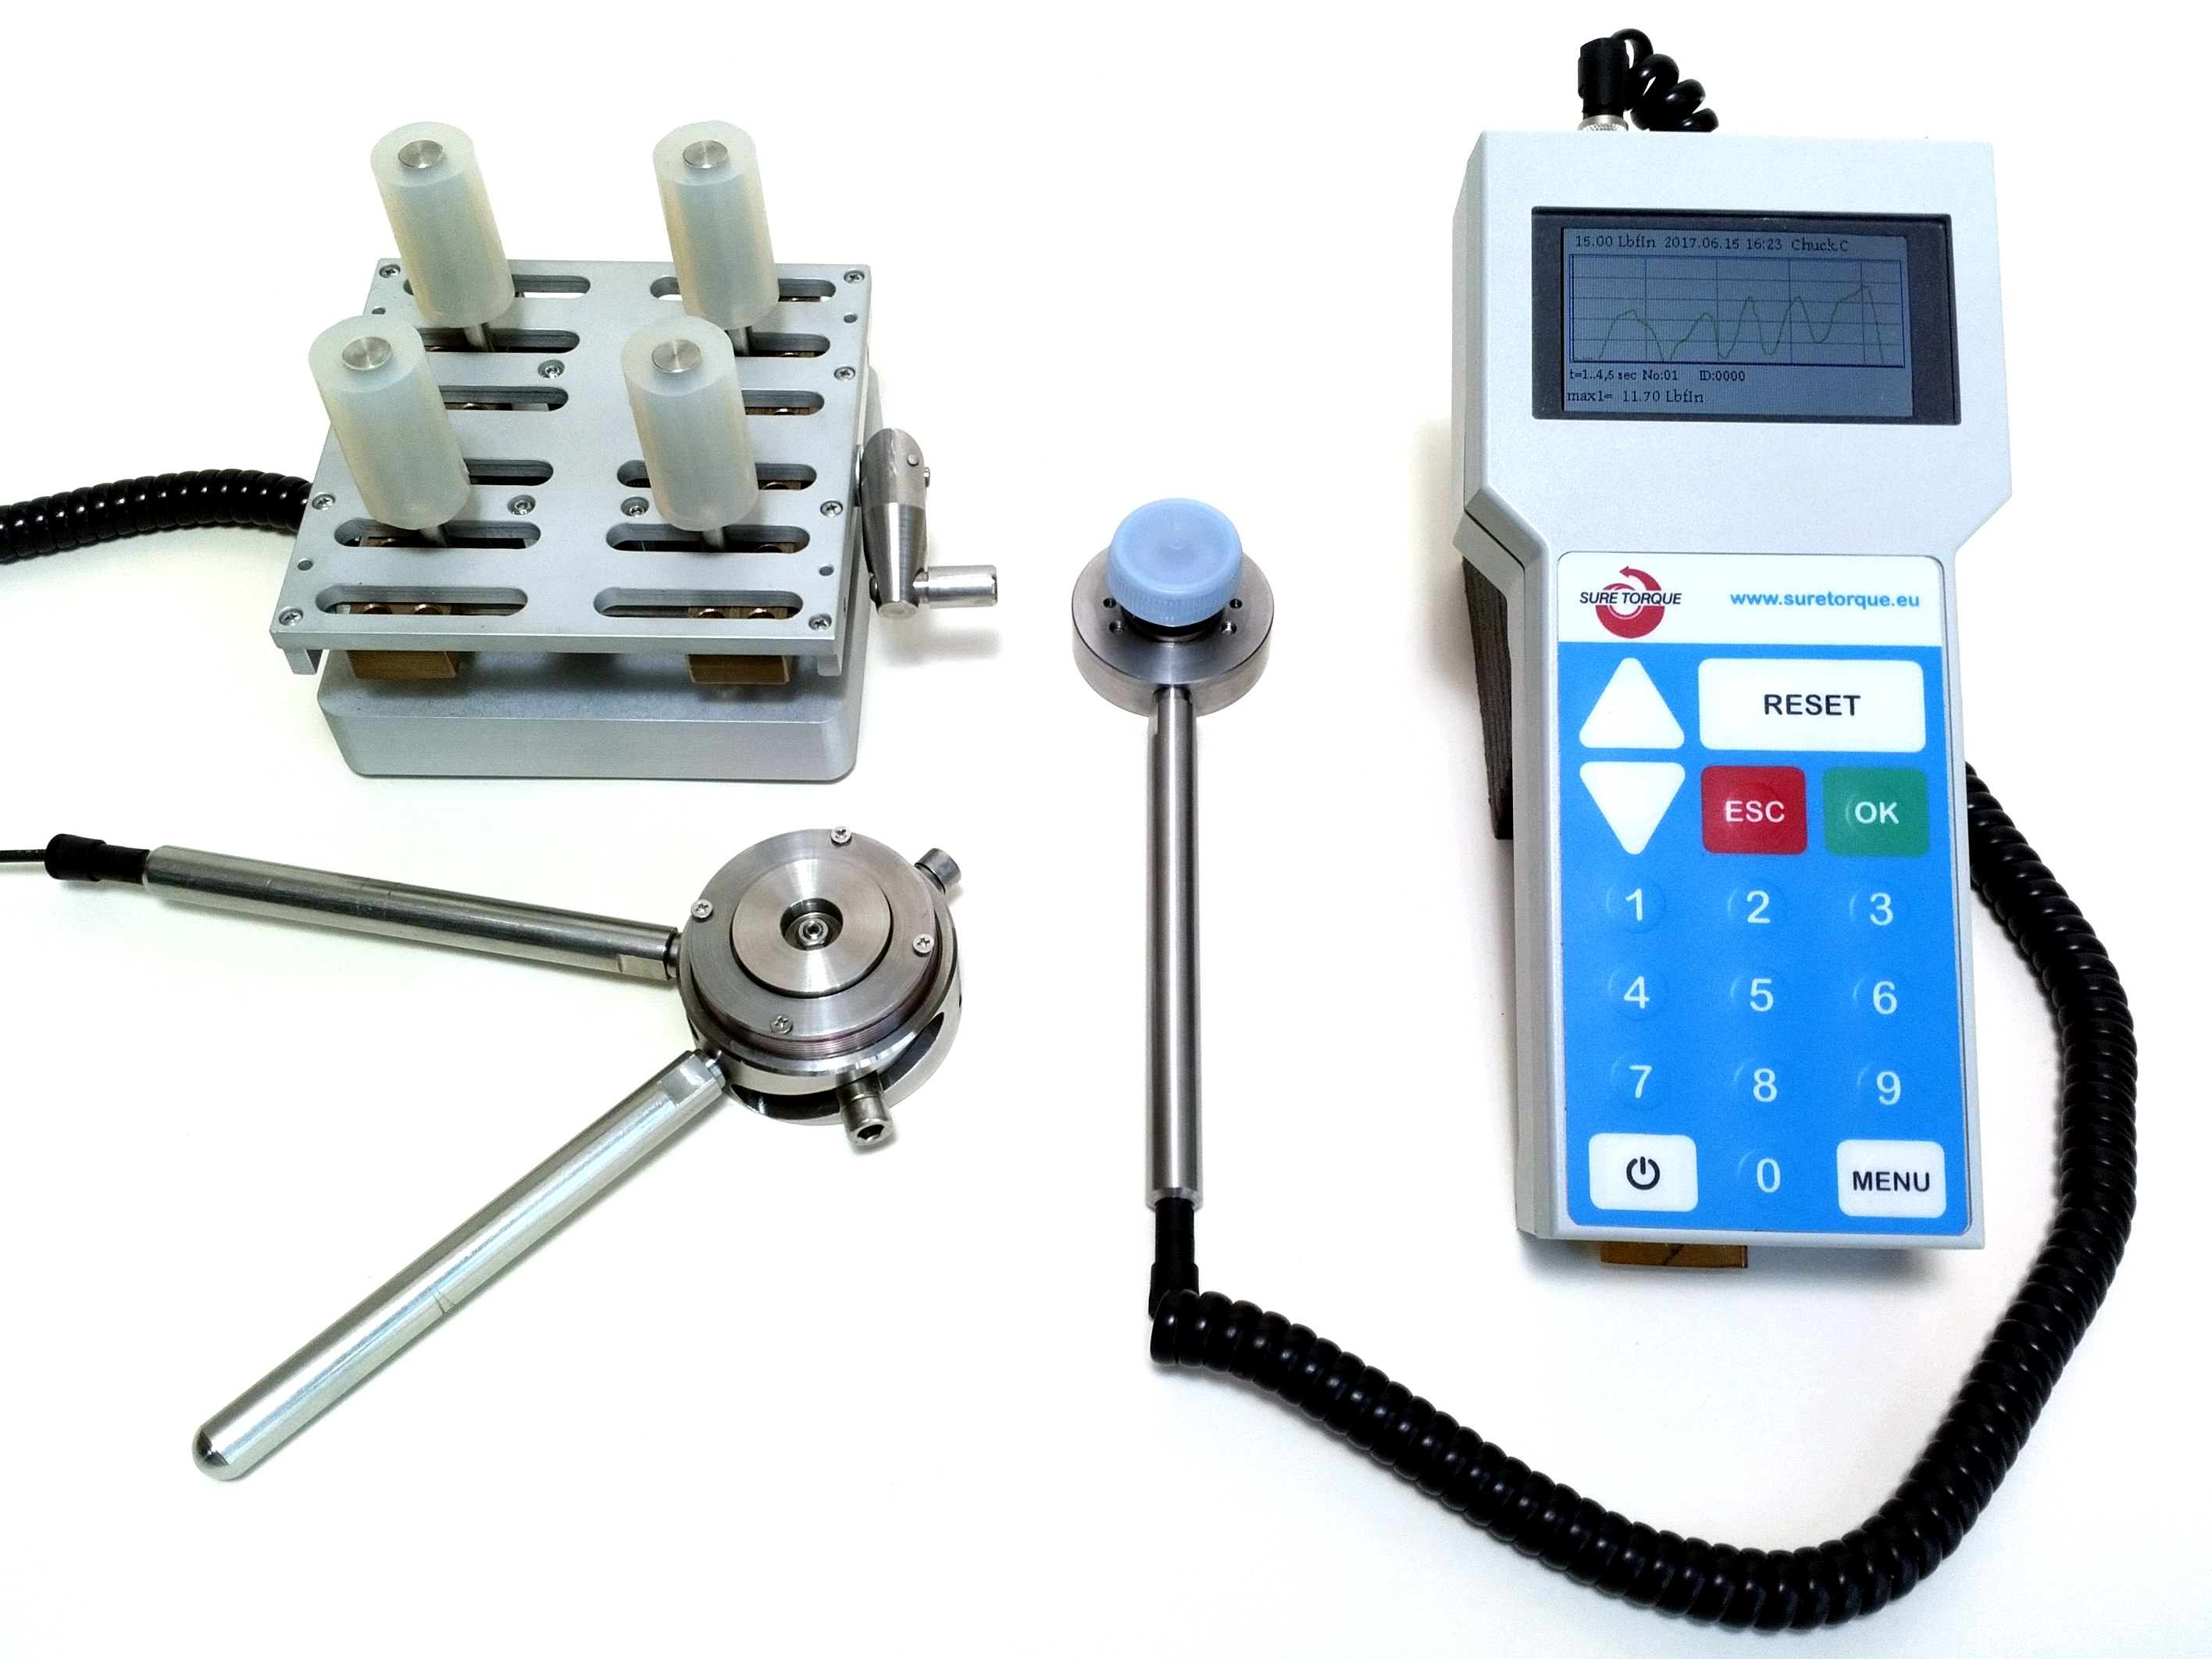 ST-H6 universal torque - top load force tester